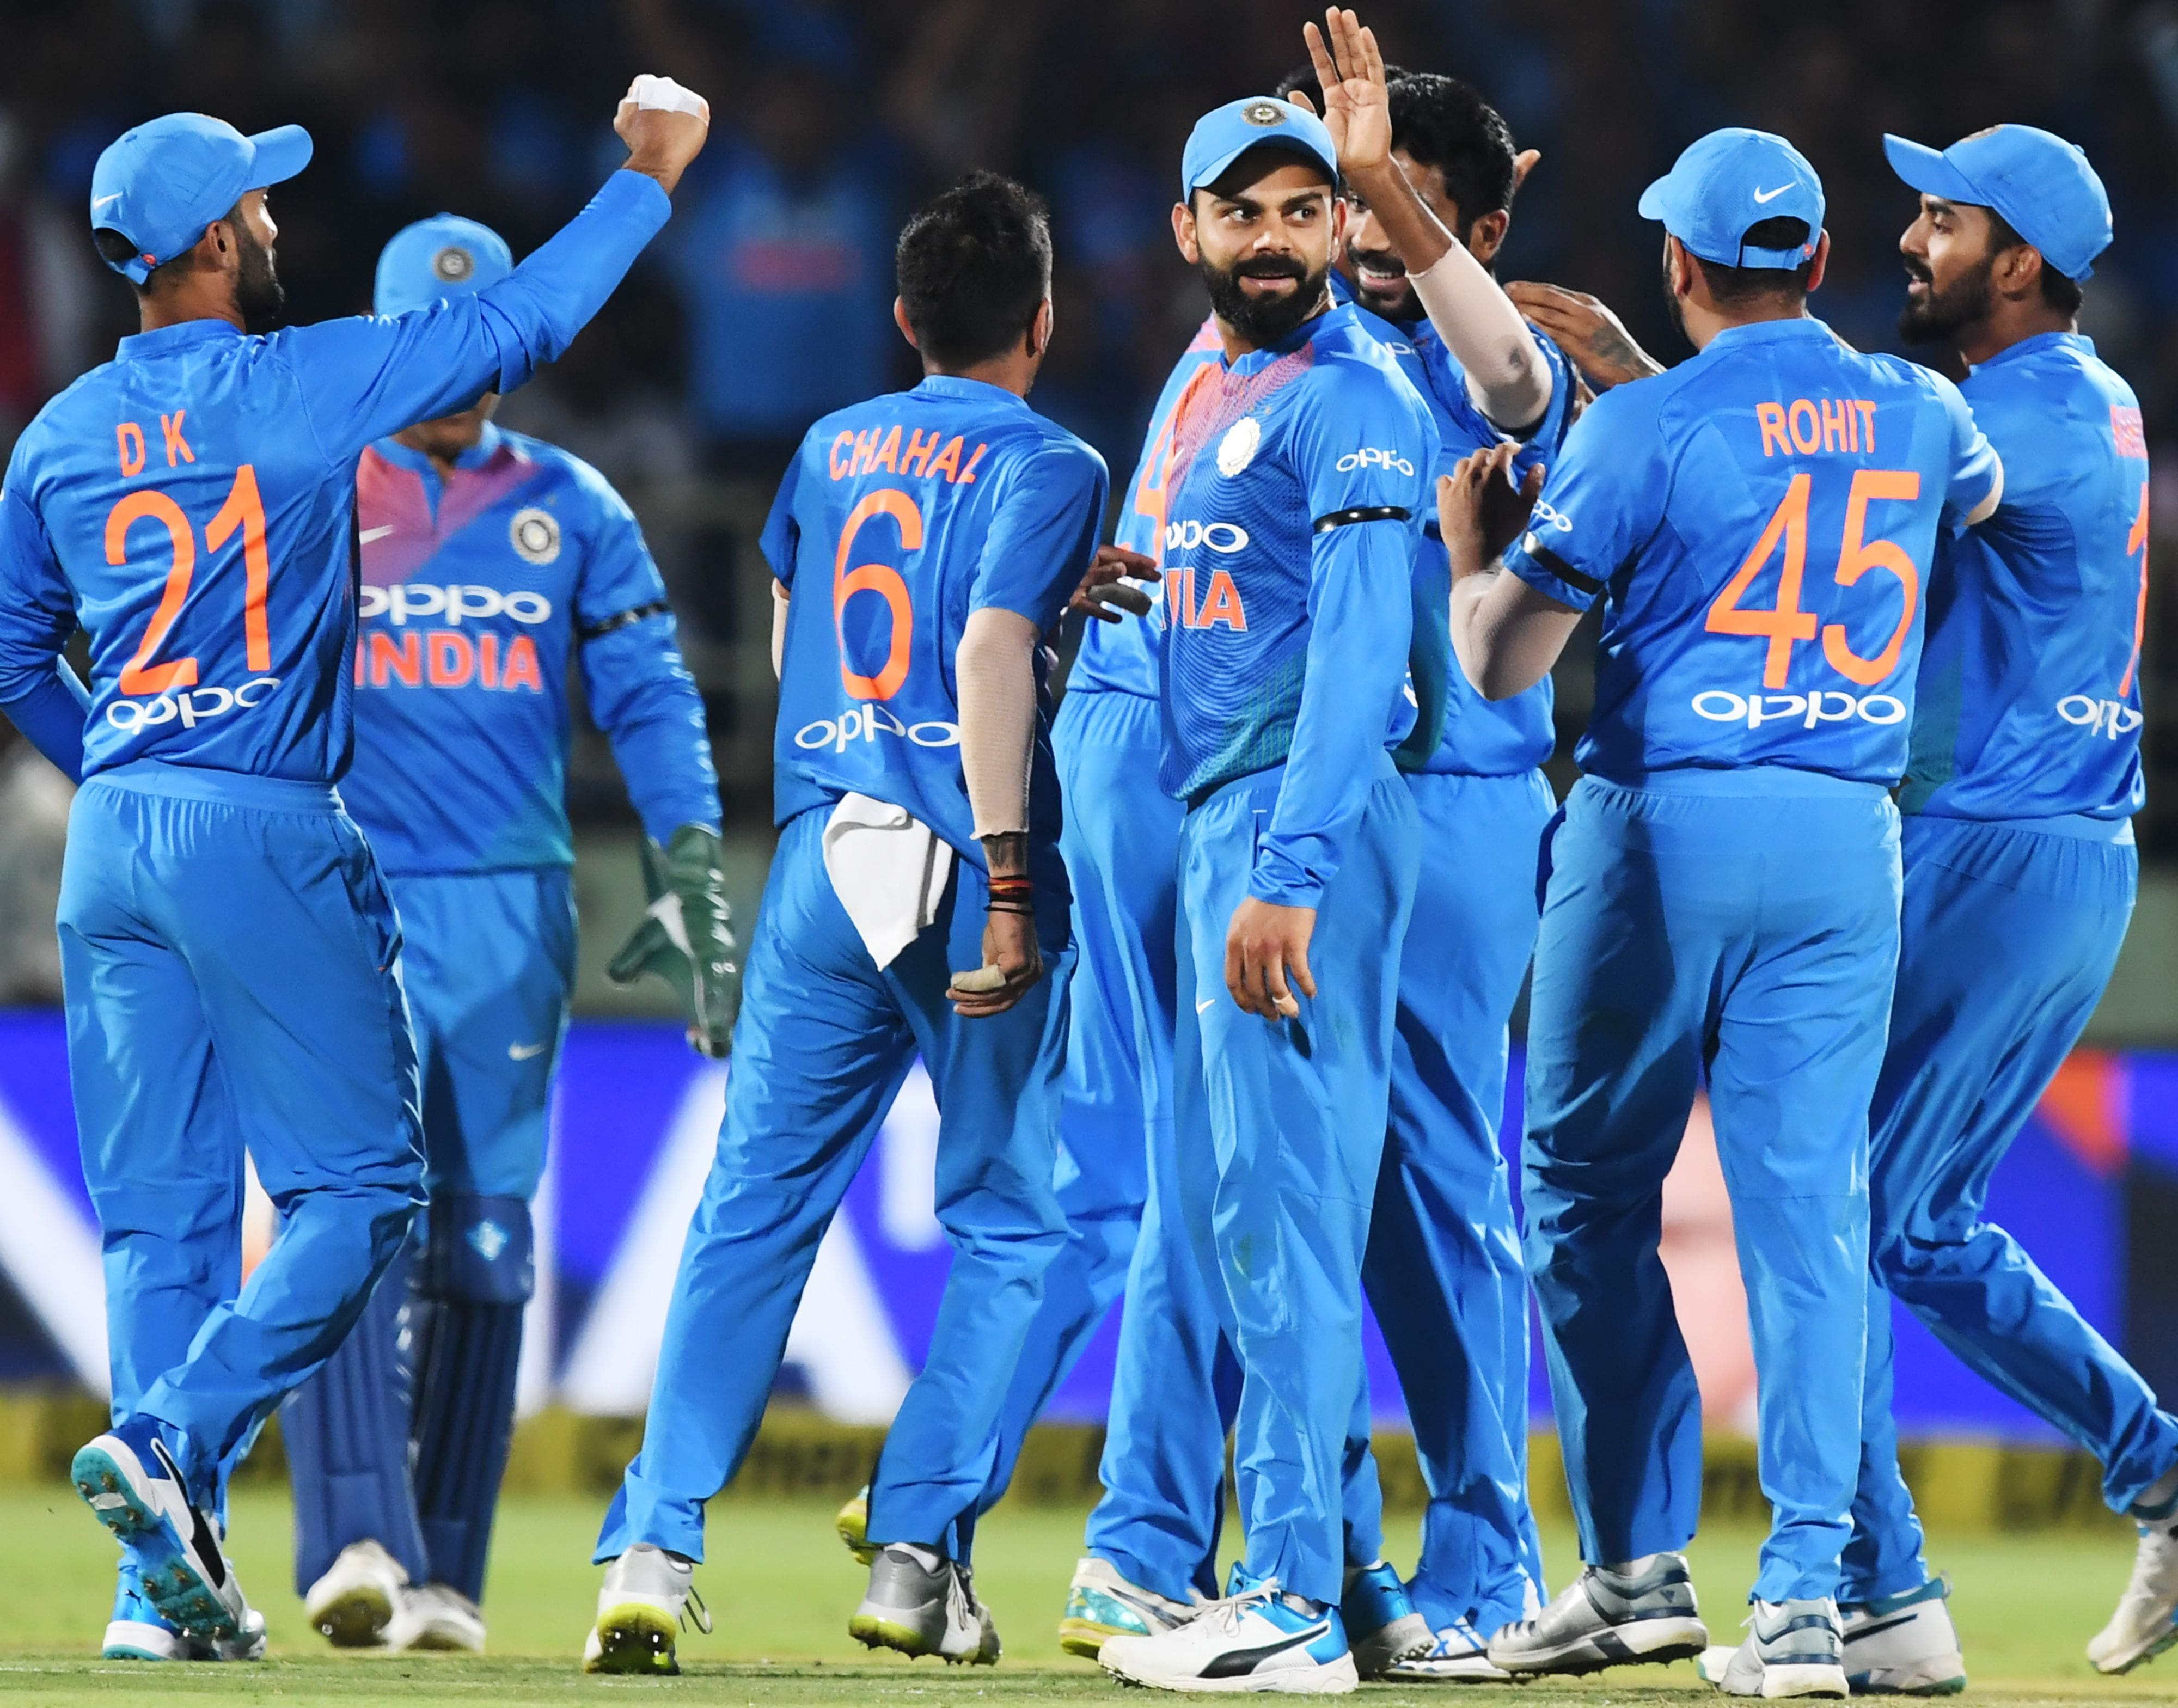 India's full schedule for 2019 World Cup